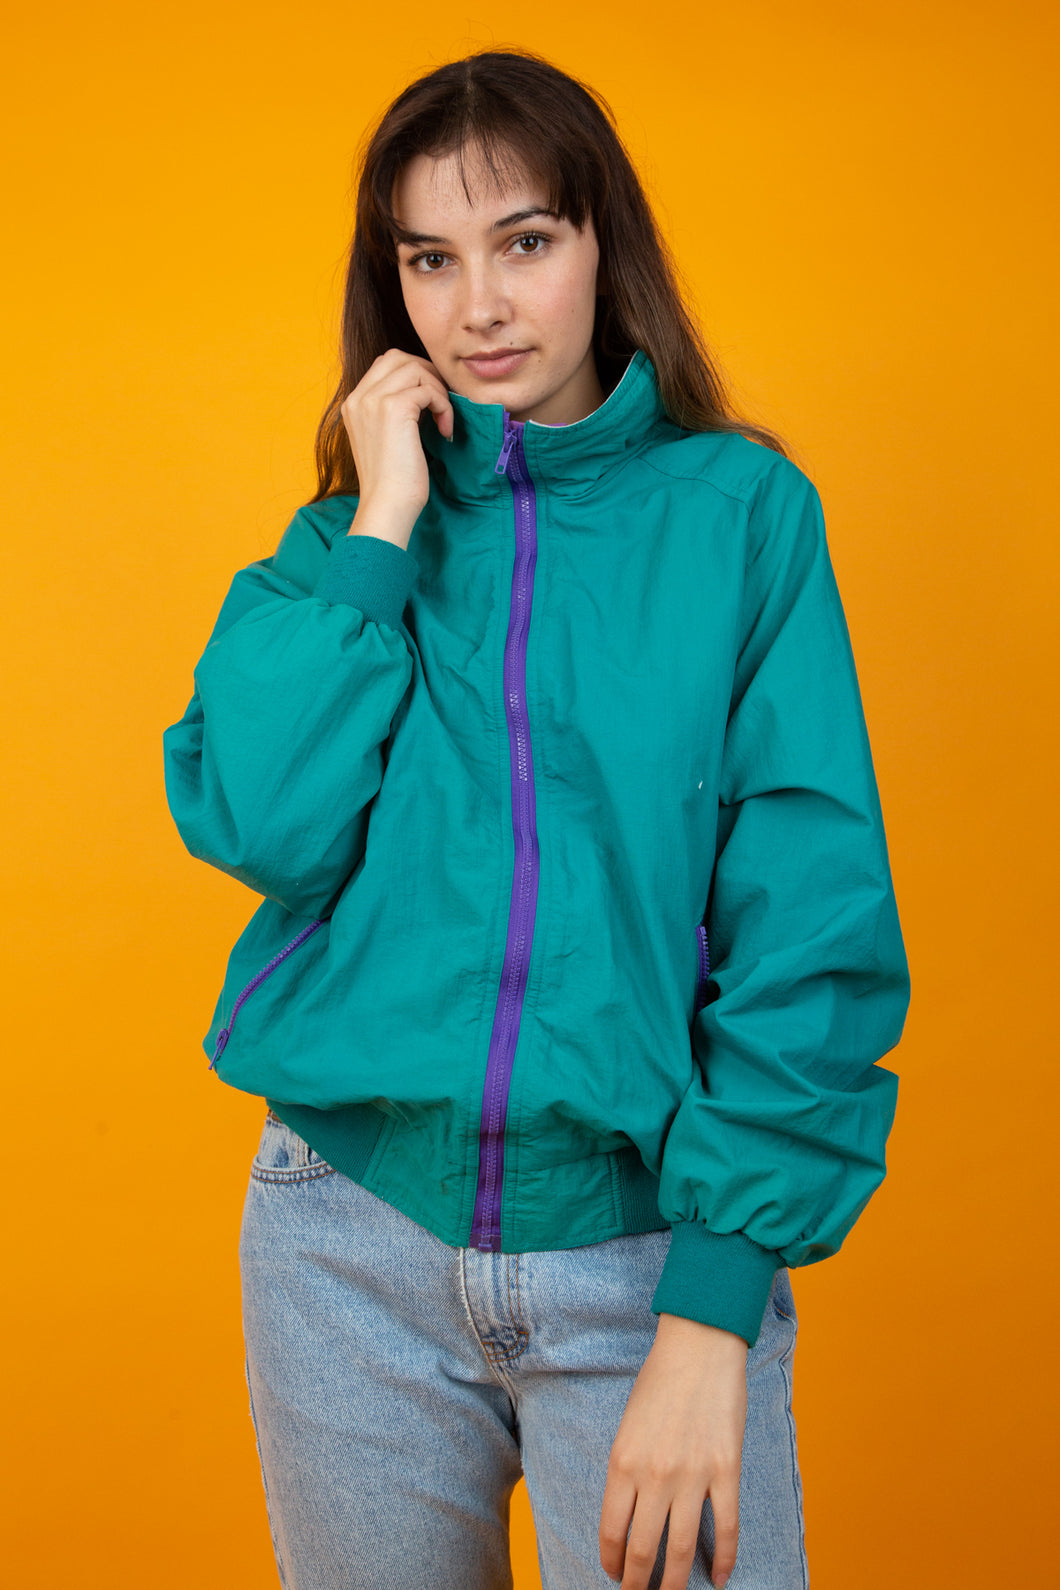 Female model wearing vintage green jacket